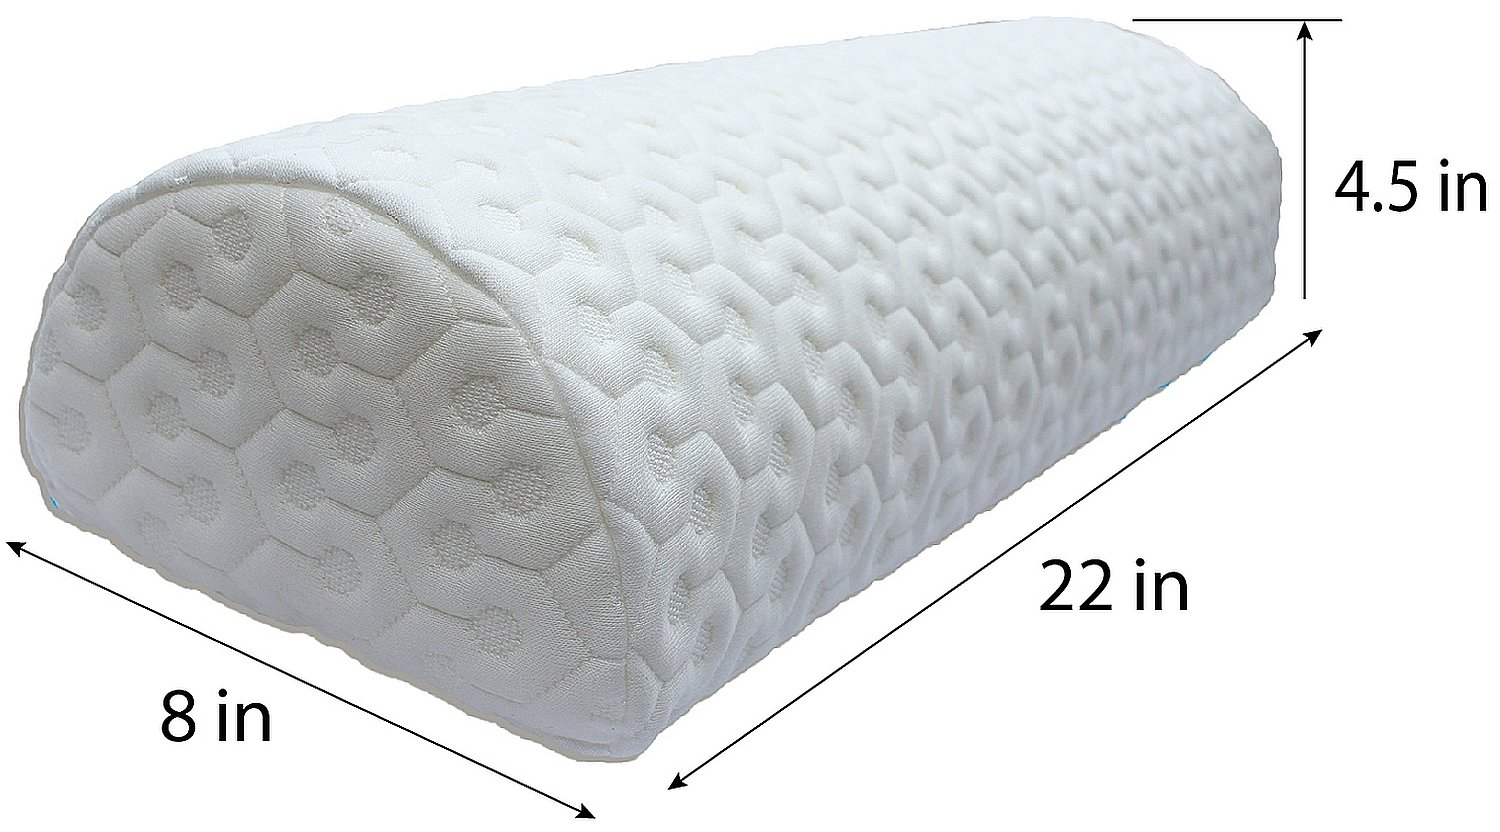 Joey's Room Half Moon Pillow | Bolster for Leg Elevation and Lower Back and Knee Support for Side Sleeper | Honeycomb Heavyweight Removable Cover